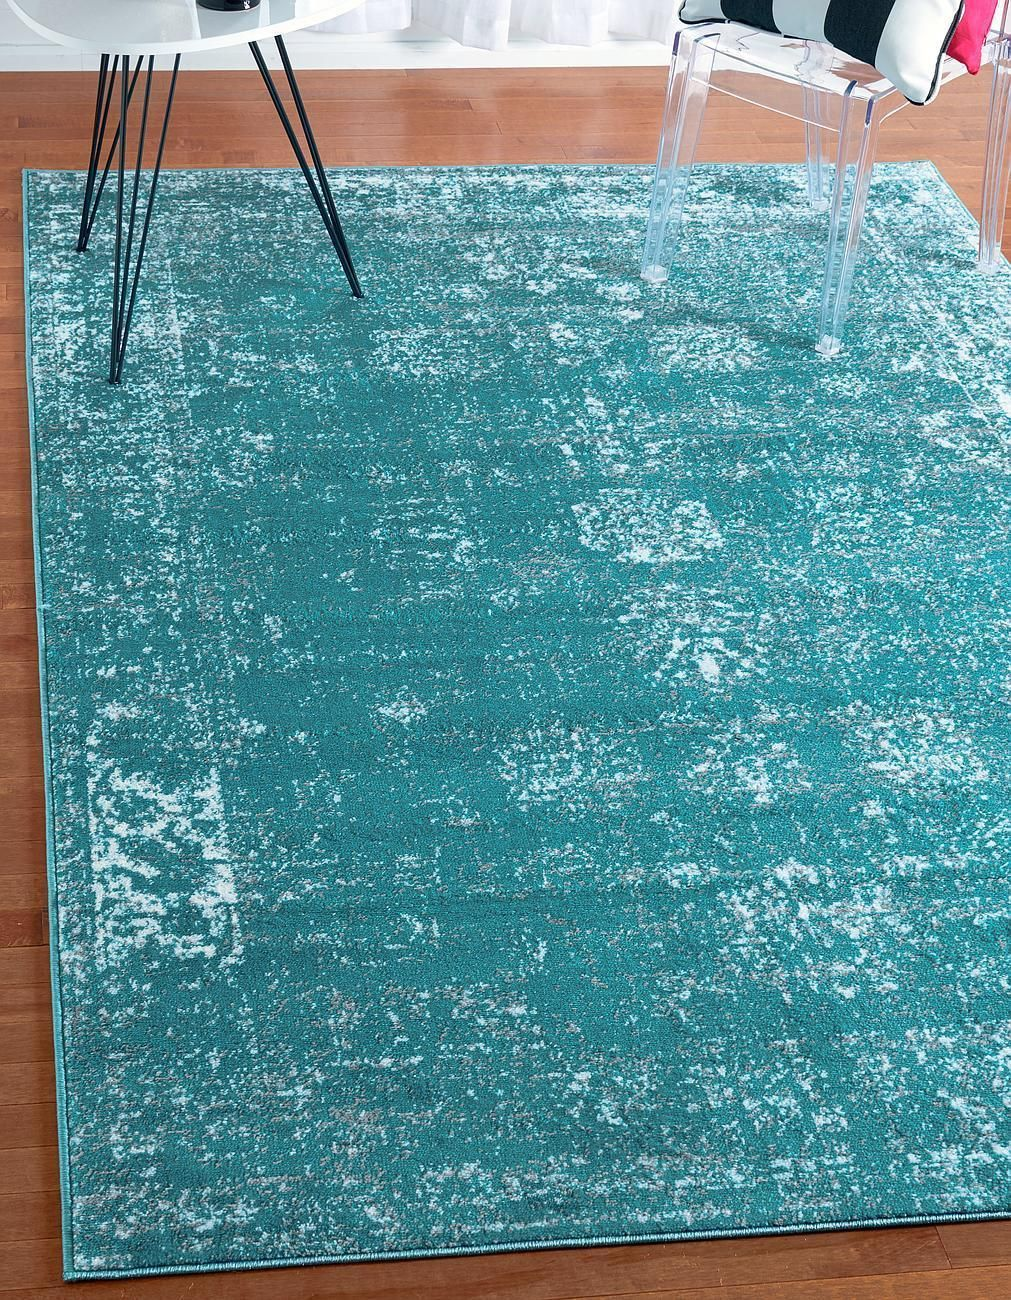 Turquoise 5 X 8 Monaco Rug Area Rugs Esalerugs New Apartment